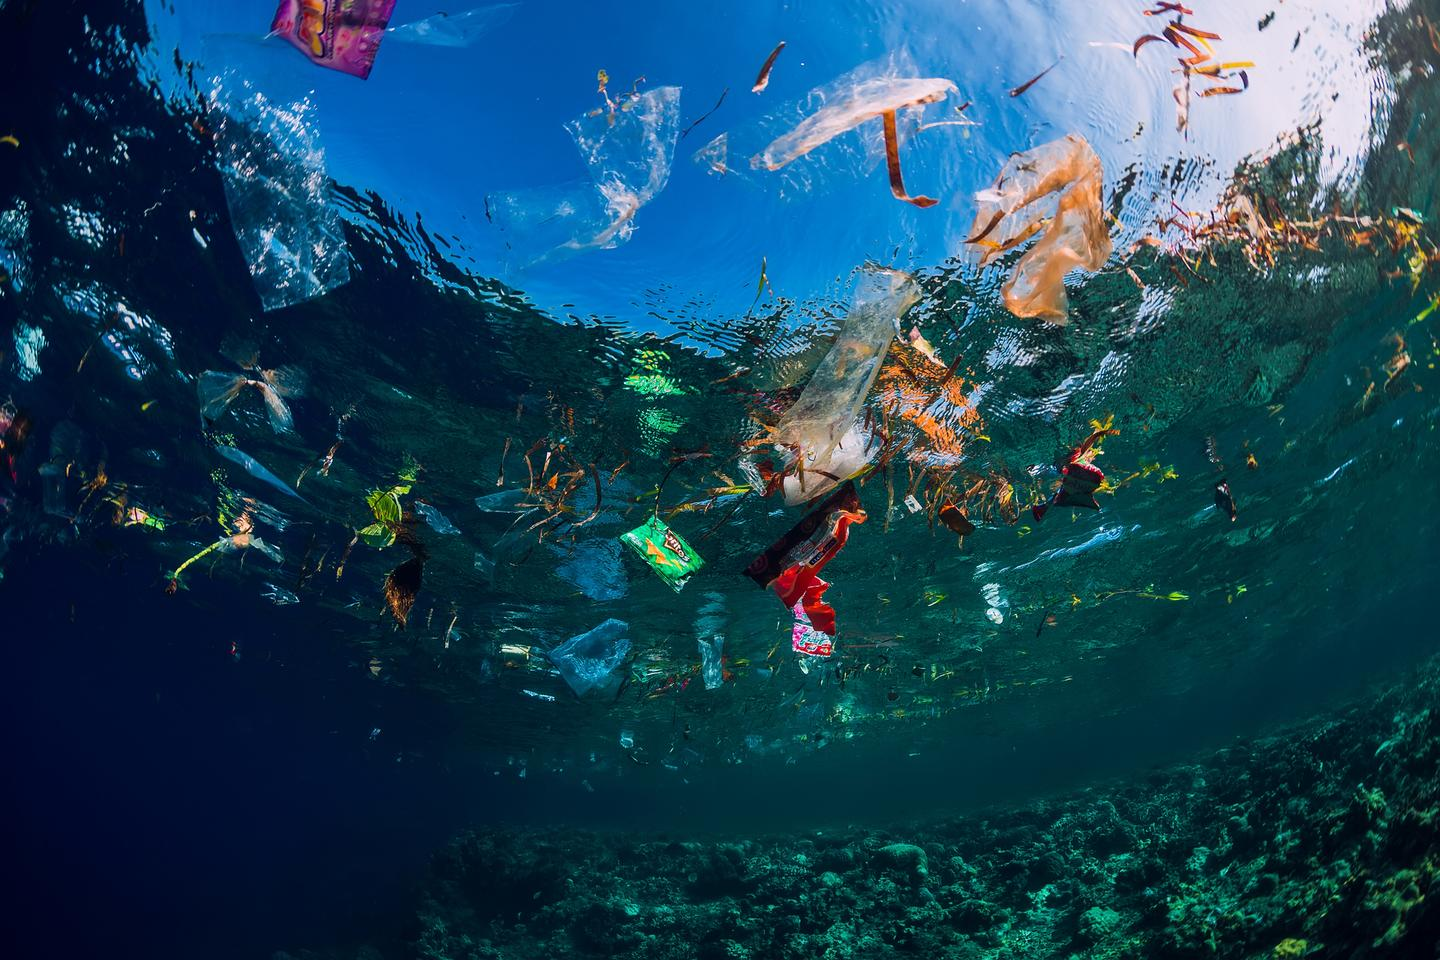 Mountains of plastic waste wash into the ocean every year, and we face a big battle to clean up the mess